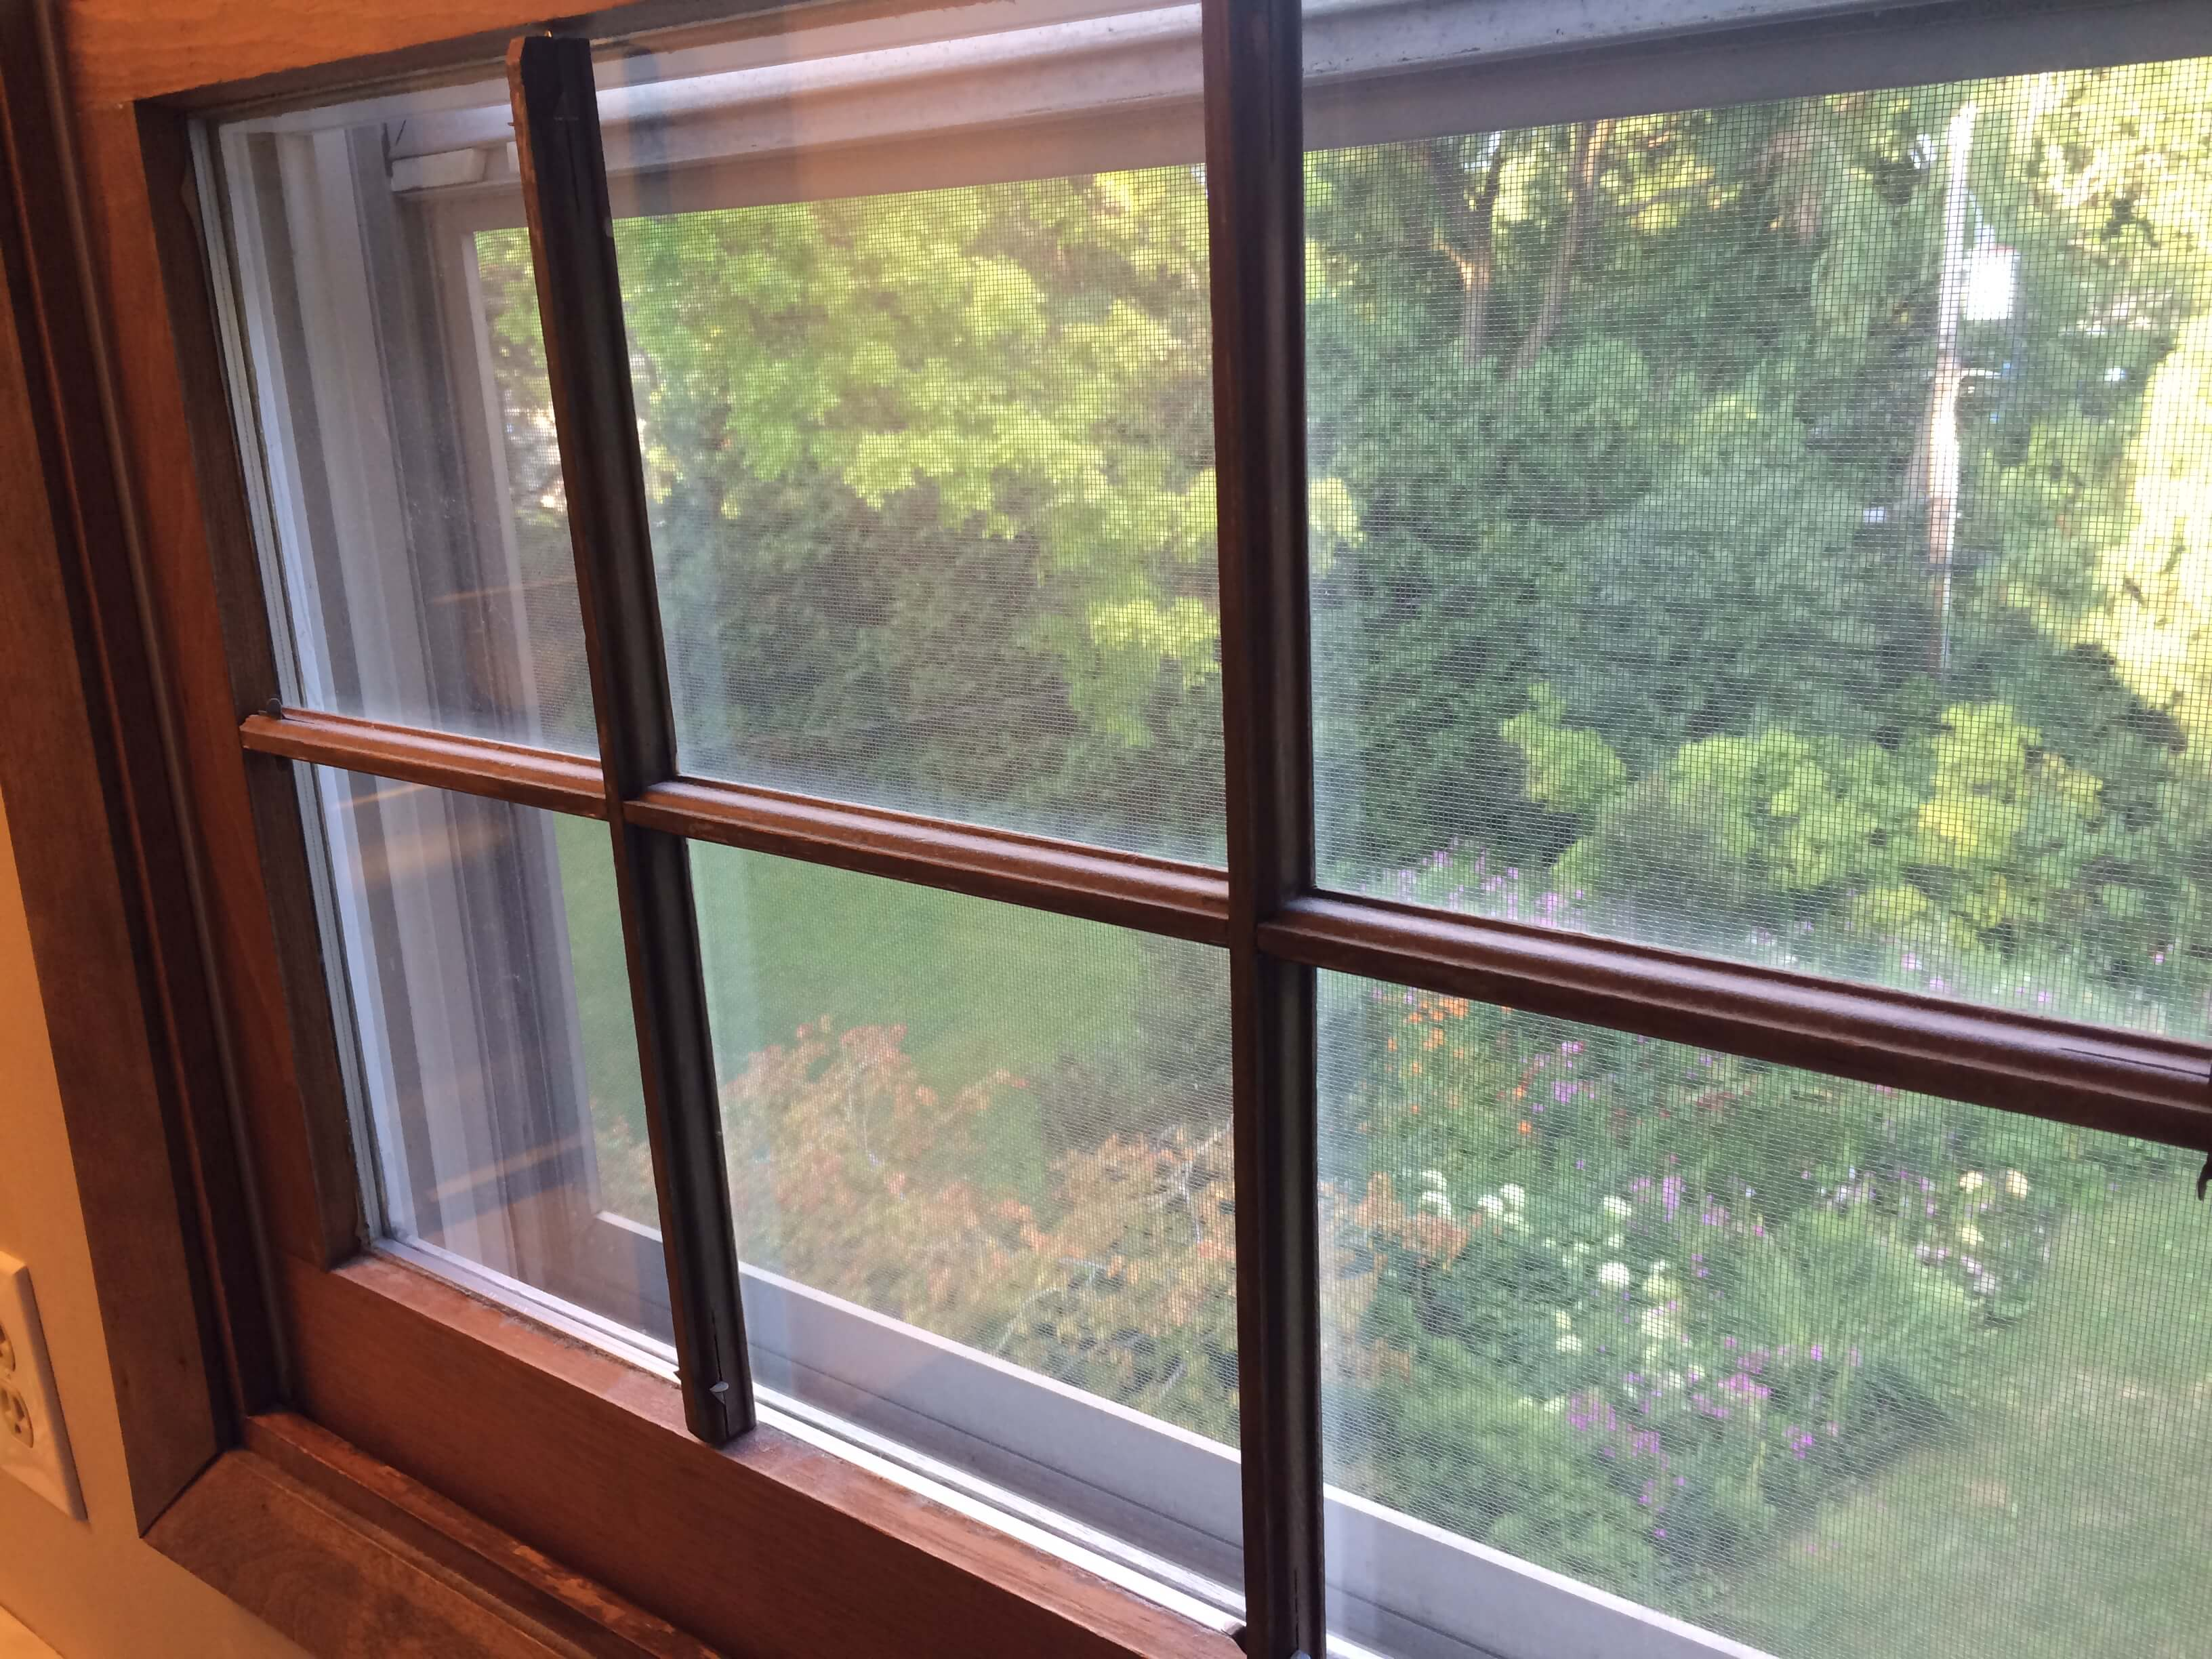 Enjoy double or triple glass panes for home insulation